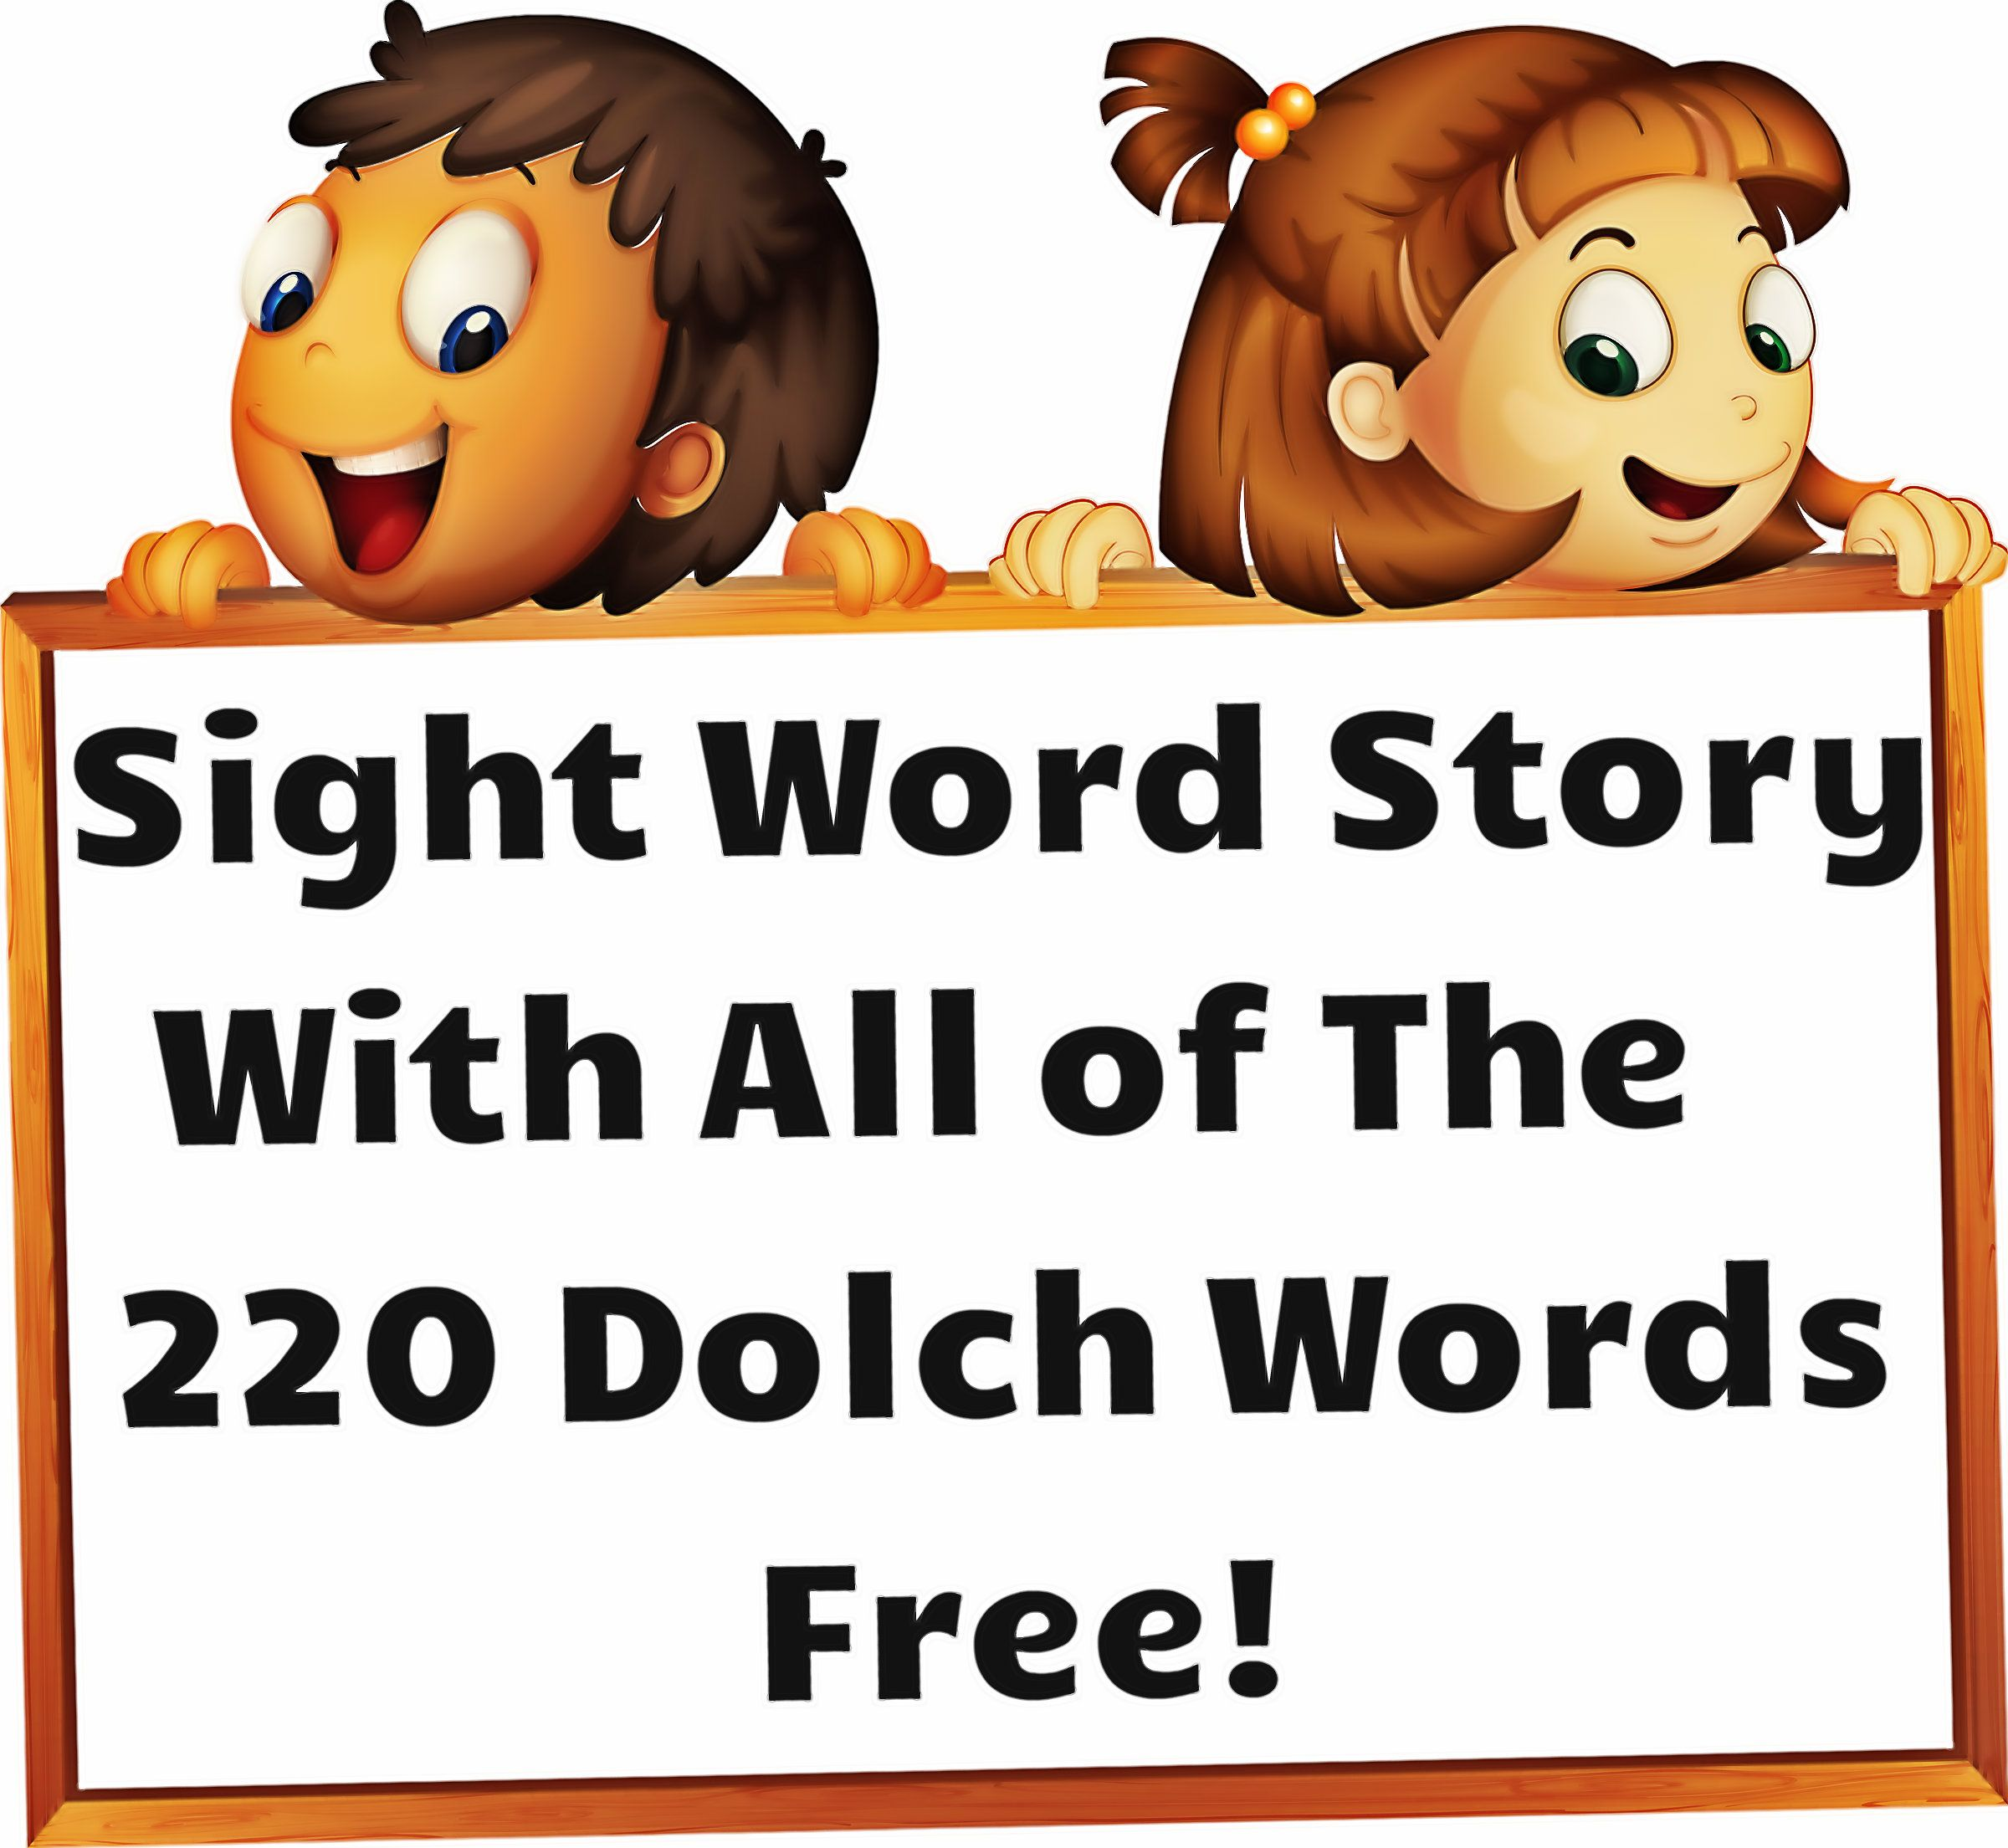 Sight Word Story With All Dolch Words